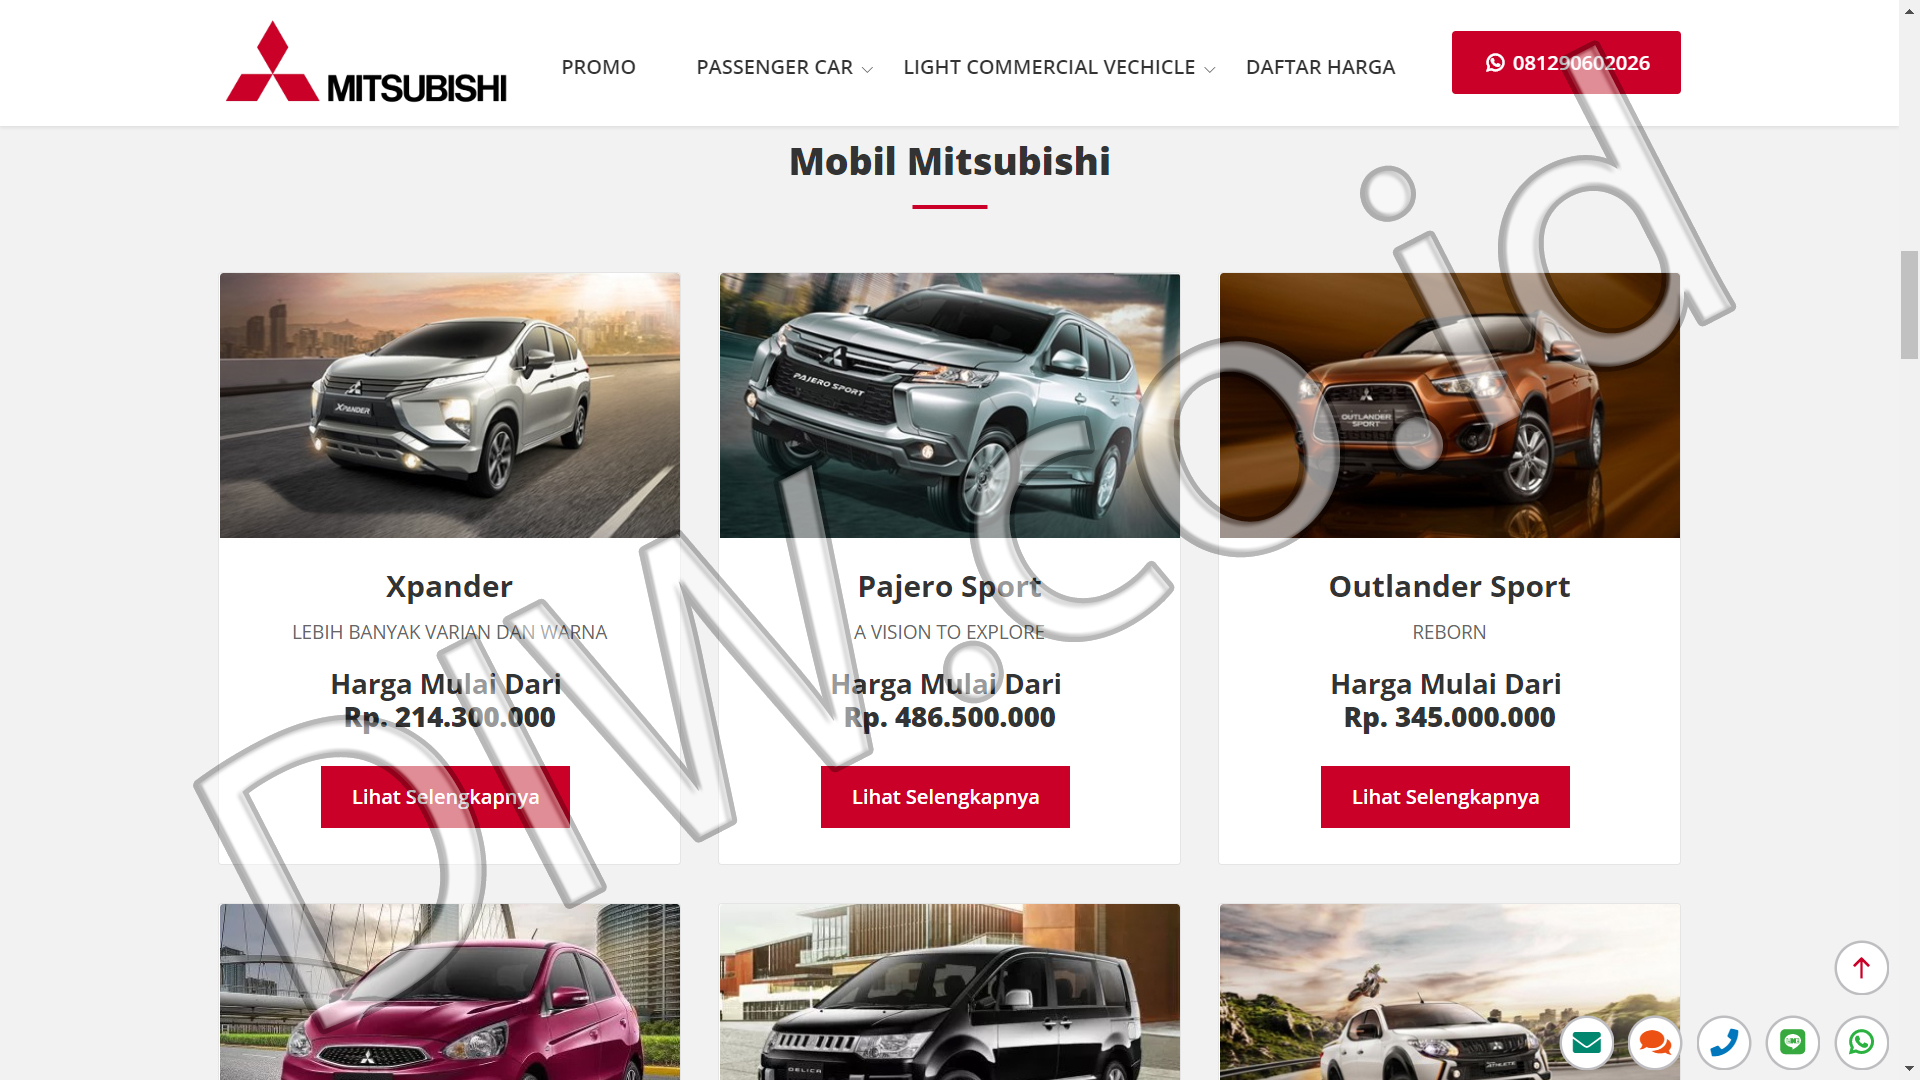 Portfolio 3 - Mitsubishi Indo - Andri Sunardi - Freelancer - Web Developer - CEO DIW.co.id